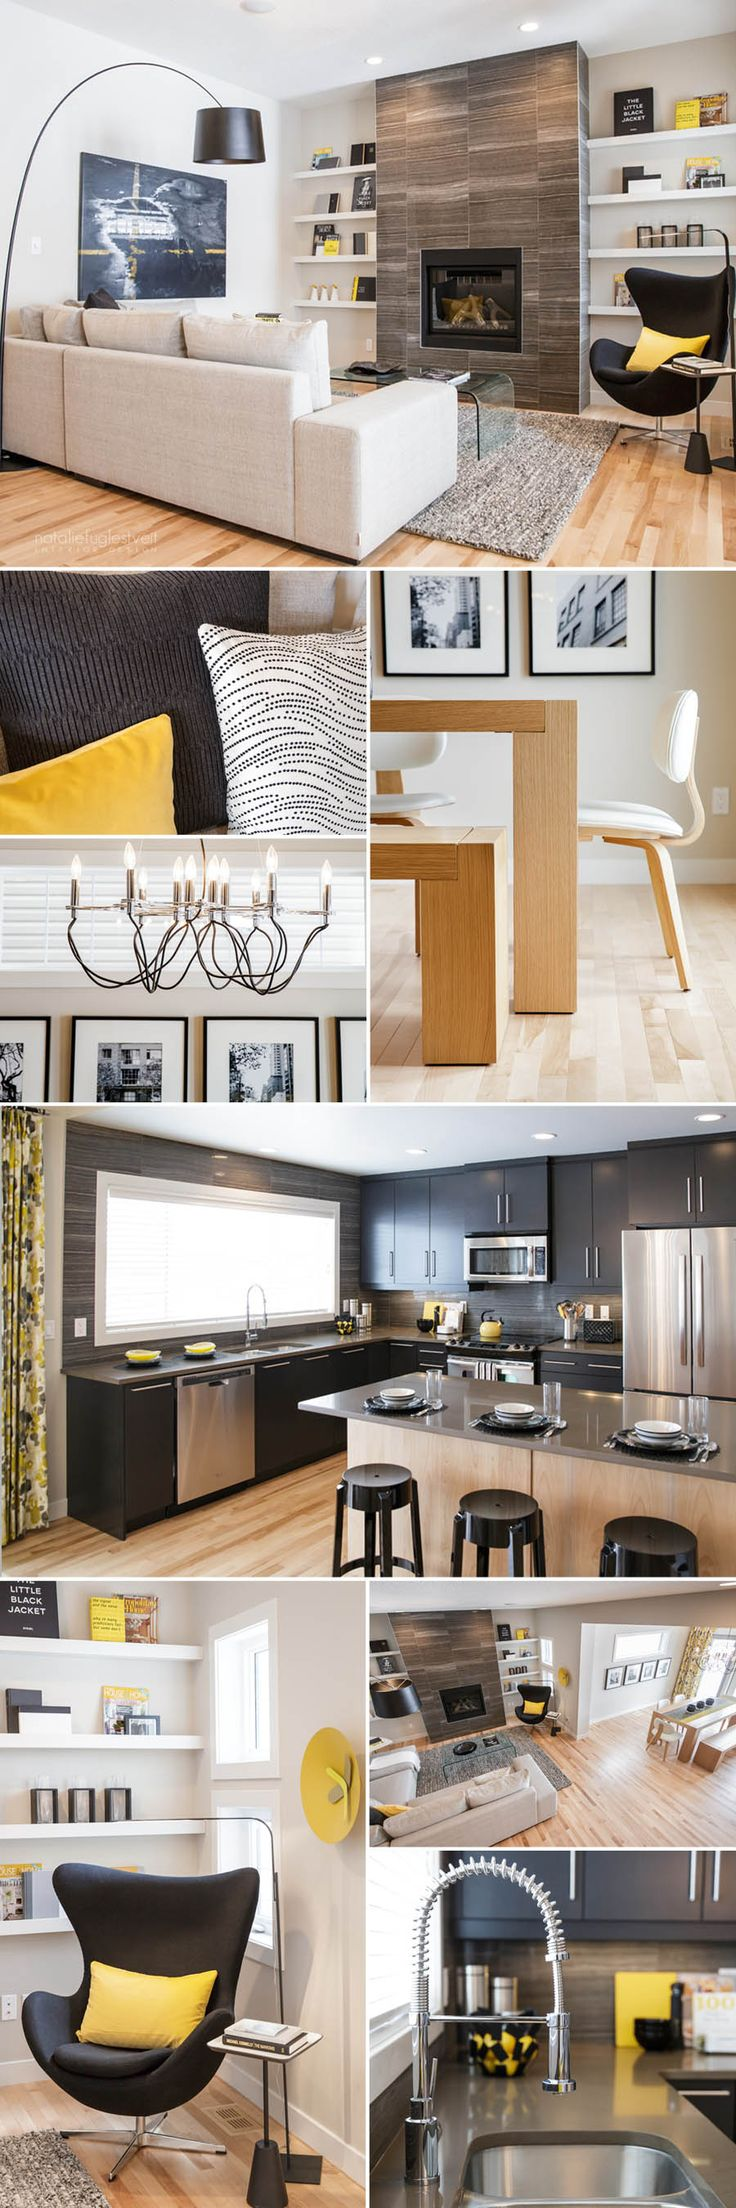 134 best canadian design images on pinterest yellow interior in kitchen calgary camper blondes fireplaces family room castle dining room